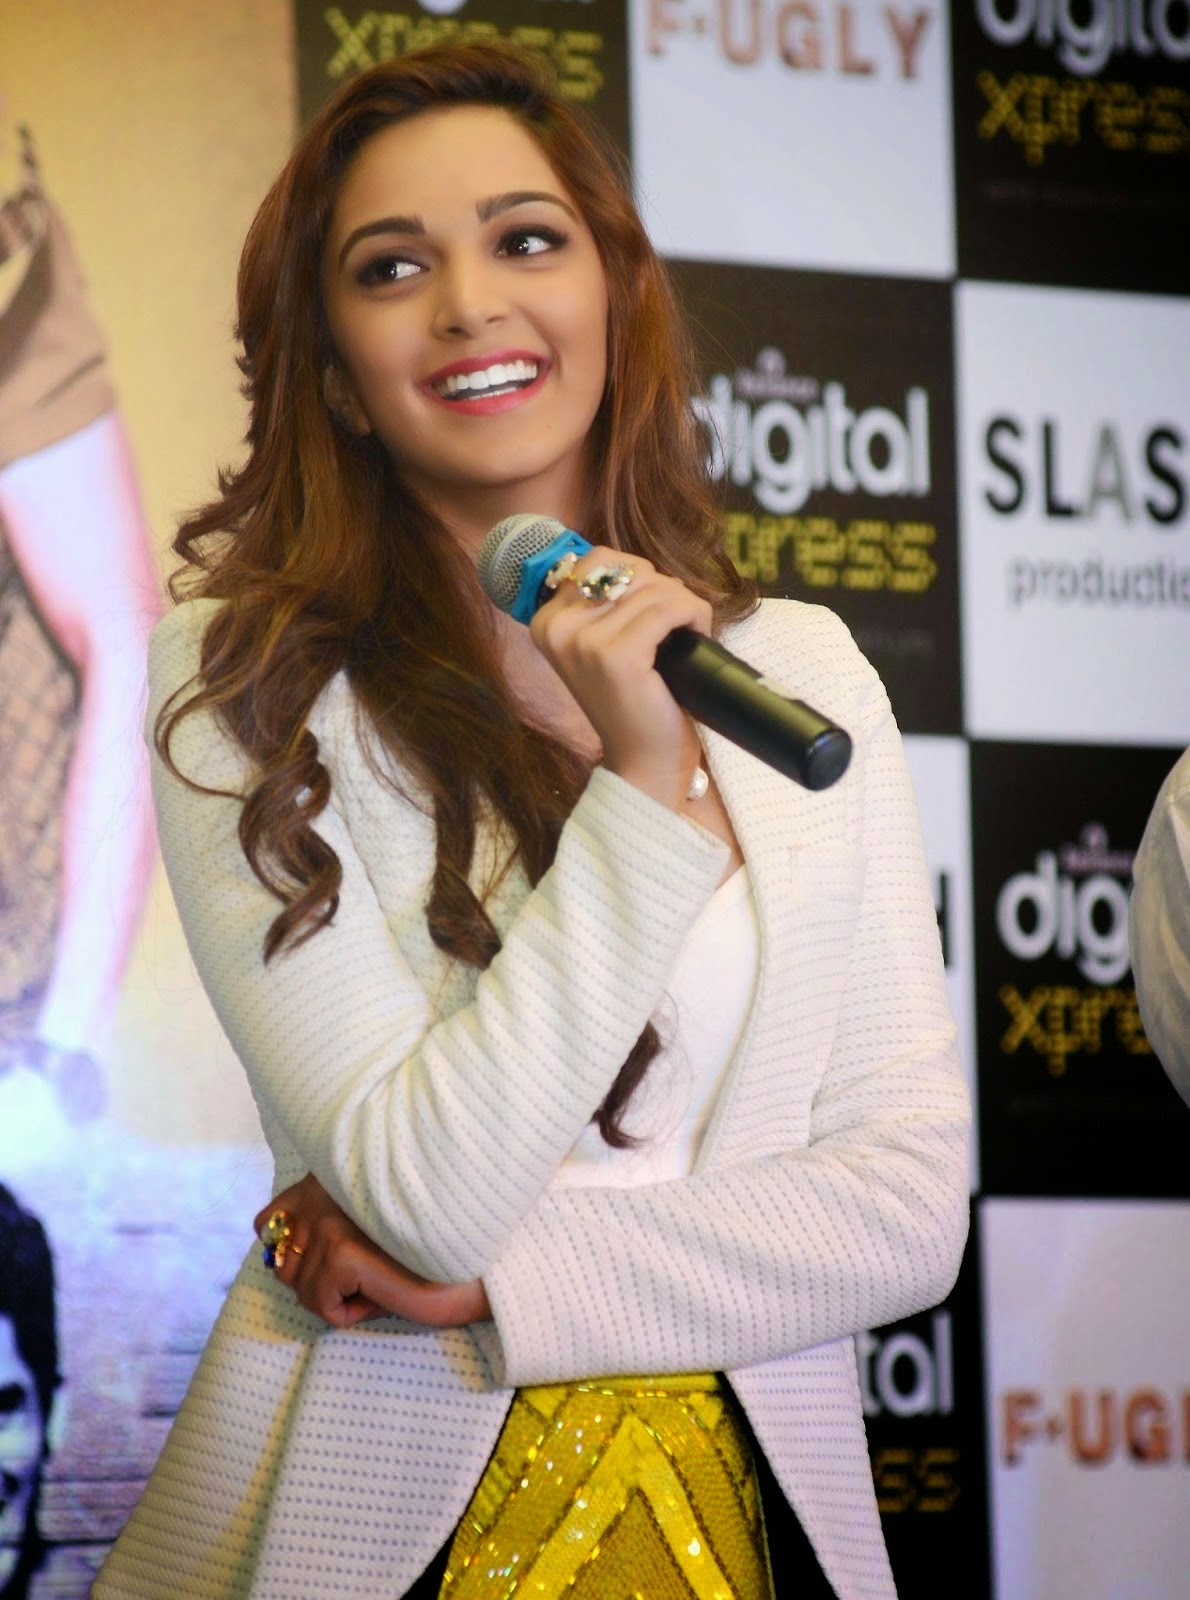 'Fugly' Actress Kiara Advani Latest hd wallpapers